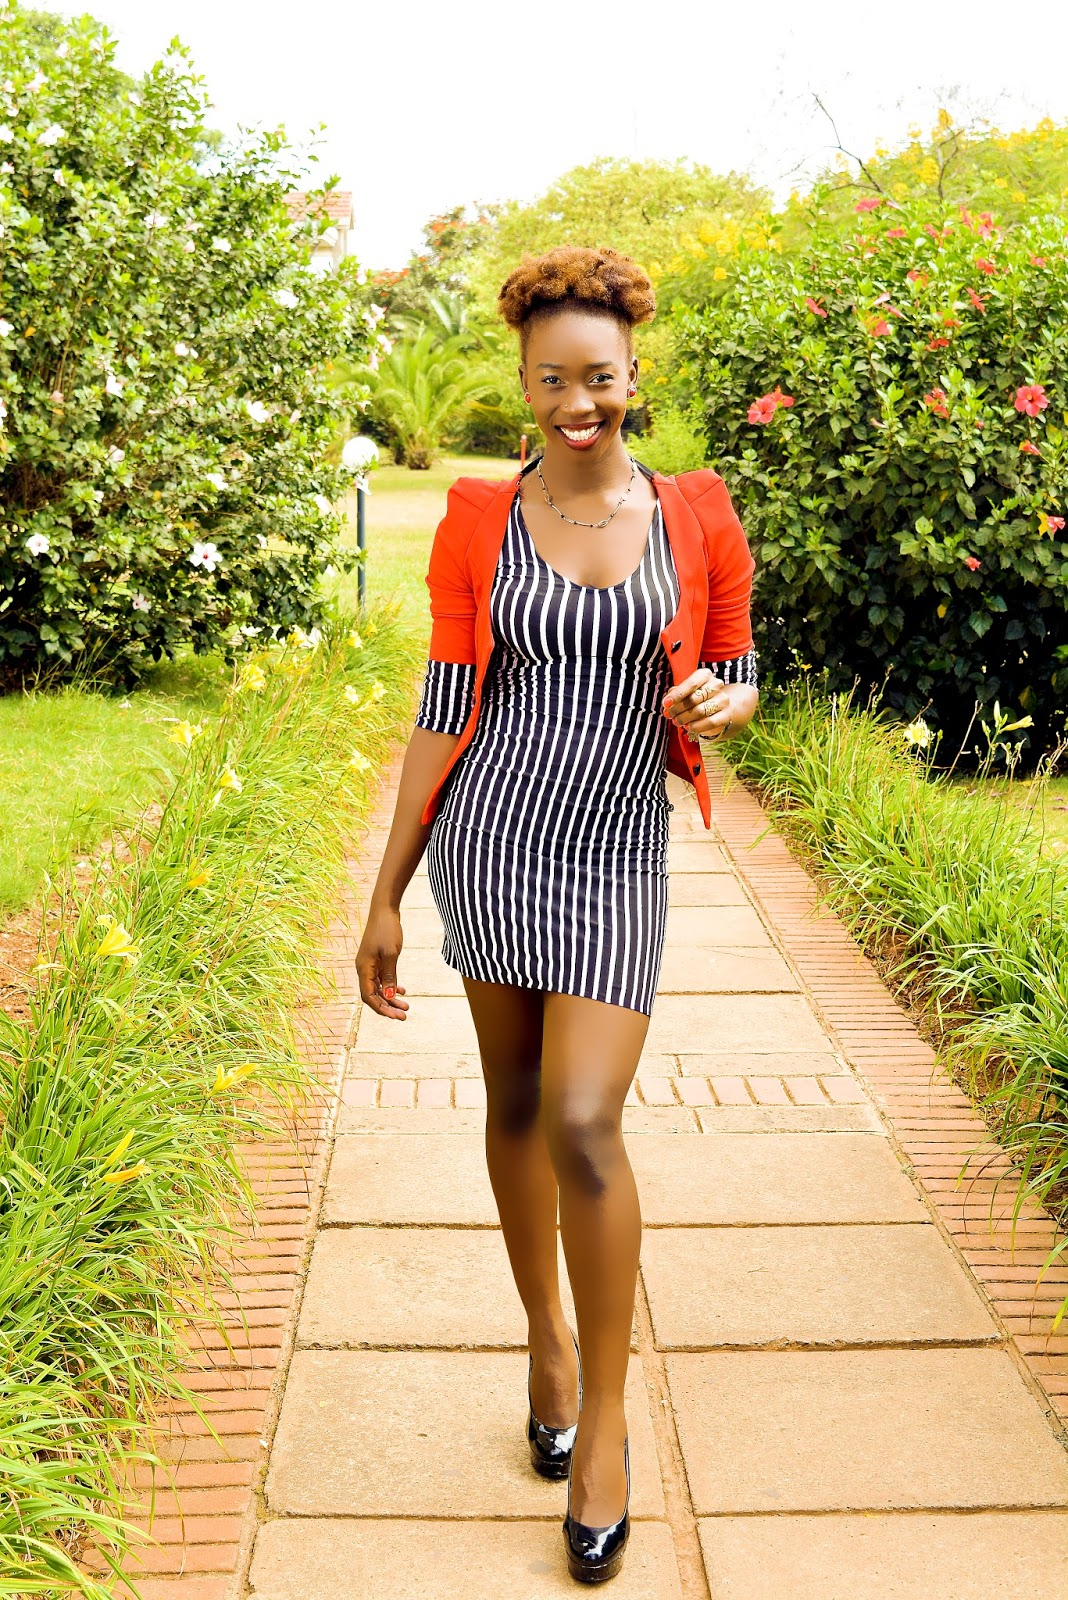 natural hair, type 4c hair, kinky hair, dyed natural hair,natural hair, kenyan fashion blogger, african fashion blogger, fashion blogger kenya, style with ezil, twa hairstyles, how to style my twa, what to do with my type 4c hair, pink dress, bodycon dress, how to style a bodycon dress, verticall stripped mini, red coat on vertical striped dress, how to wear a stripped dress, vertical stripped dress